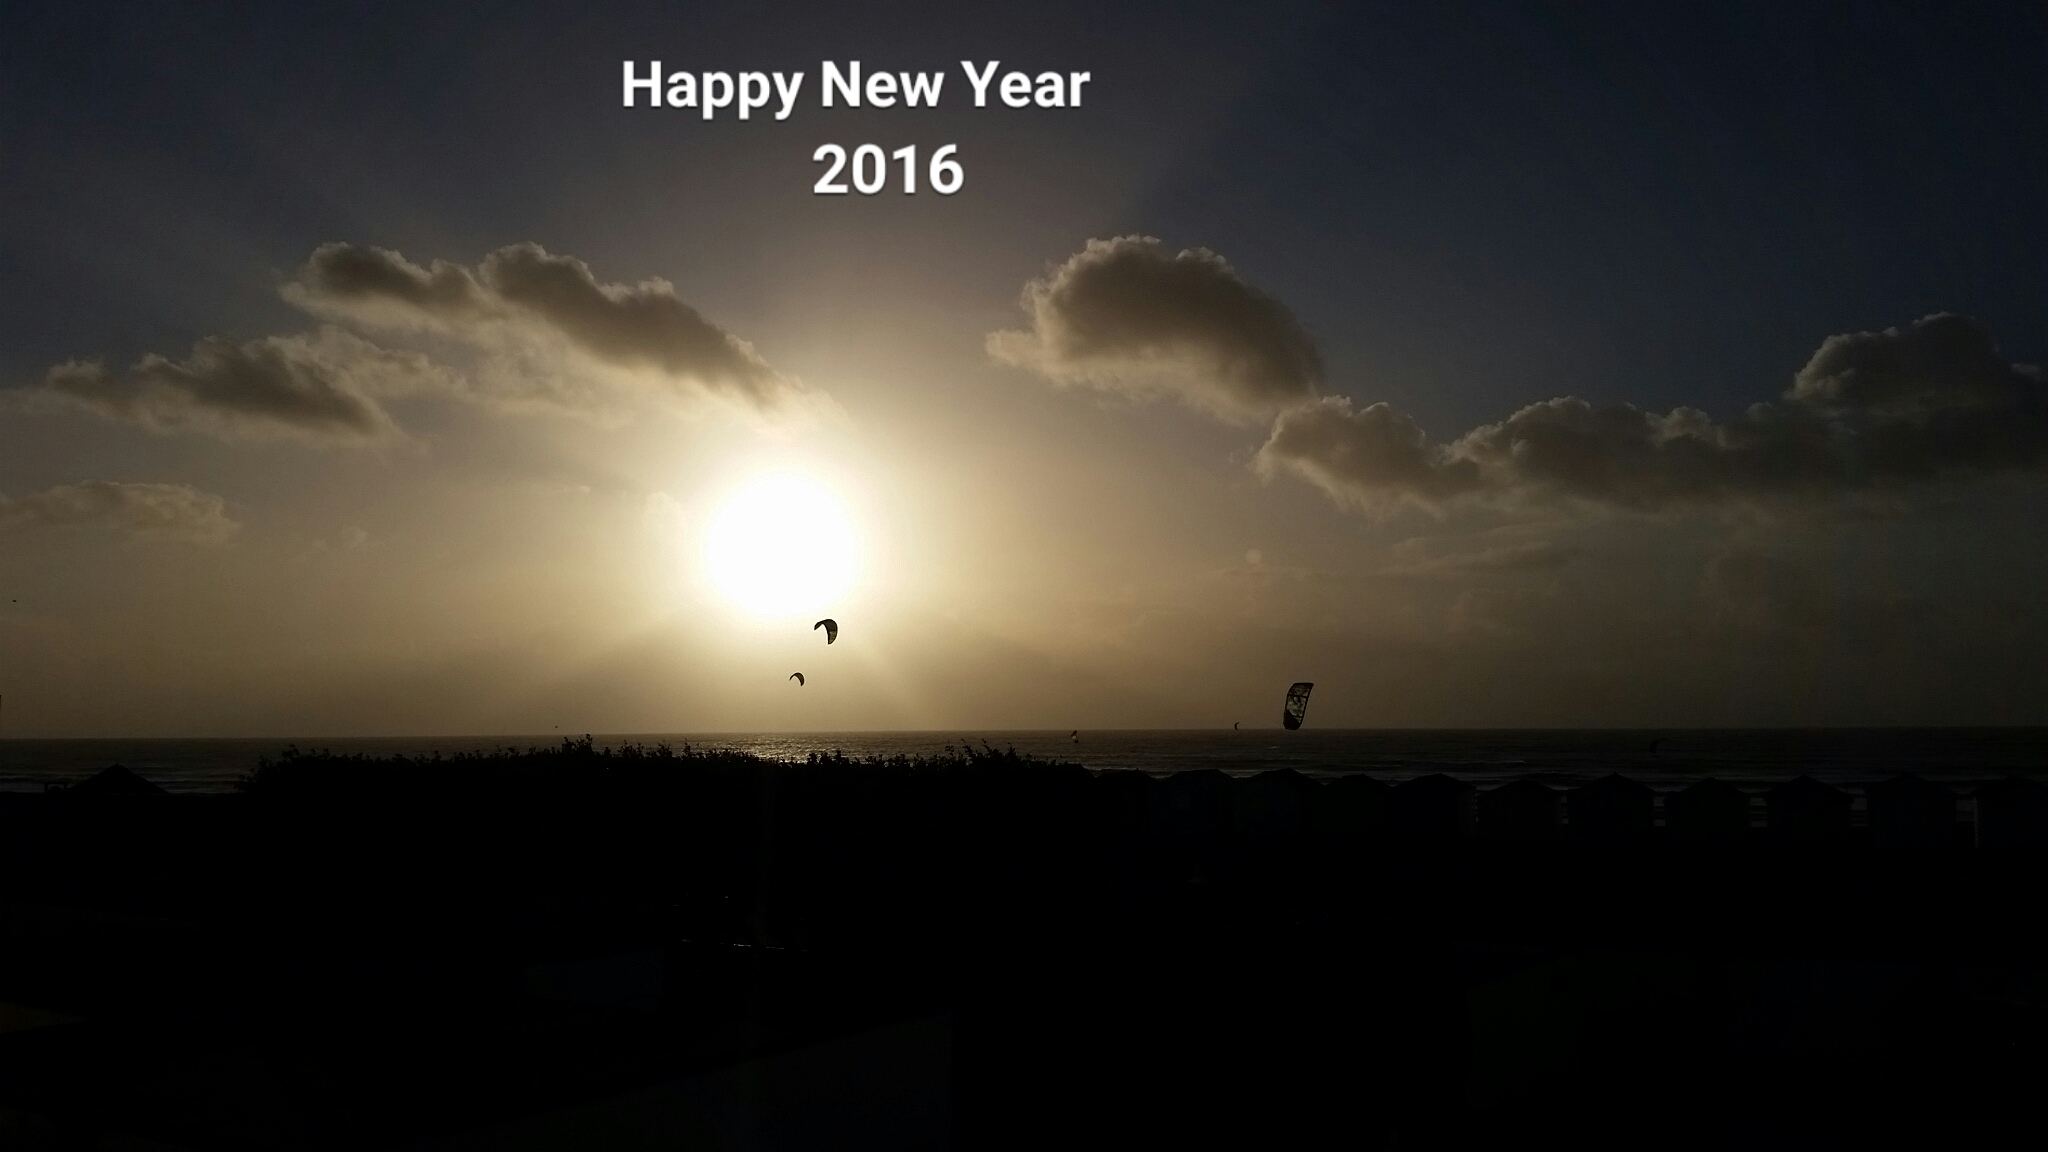 Happy New Year, 2016, Nina Simon, Quote, Lancing Beach, Lancing, Beach, Living, Beach Living